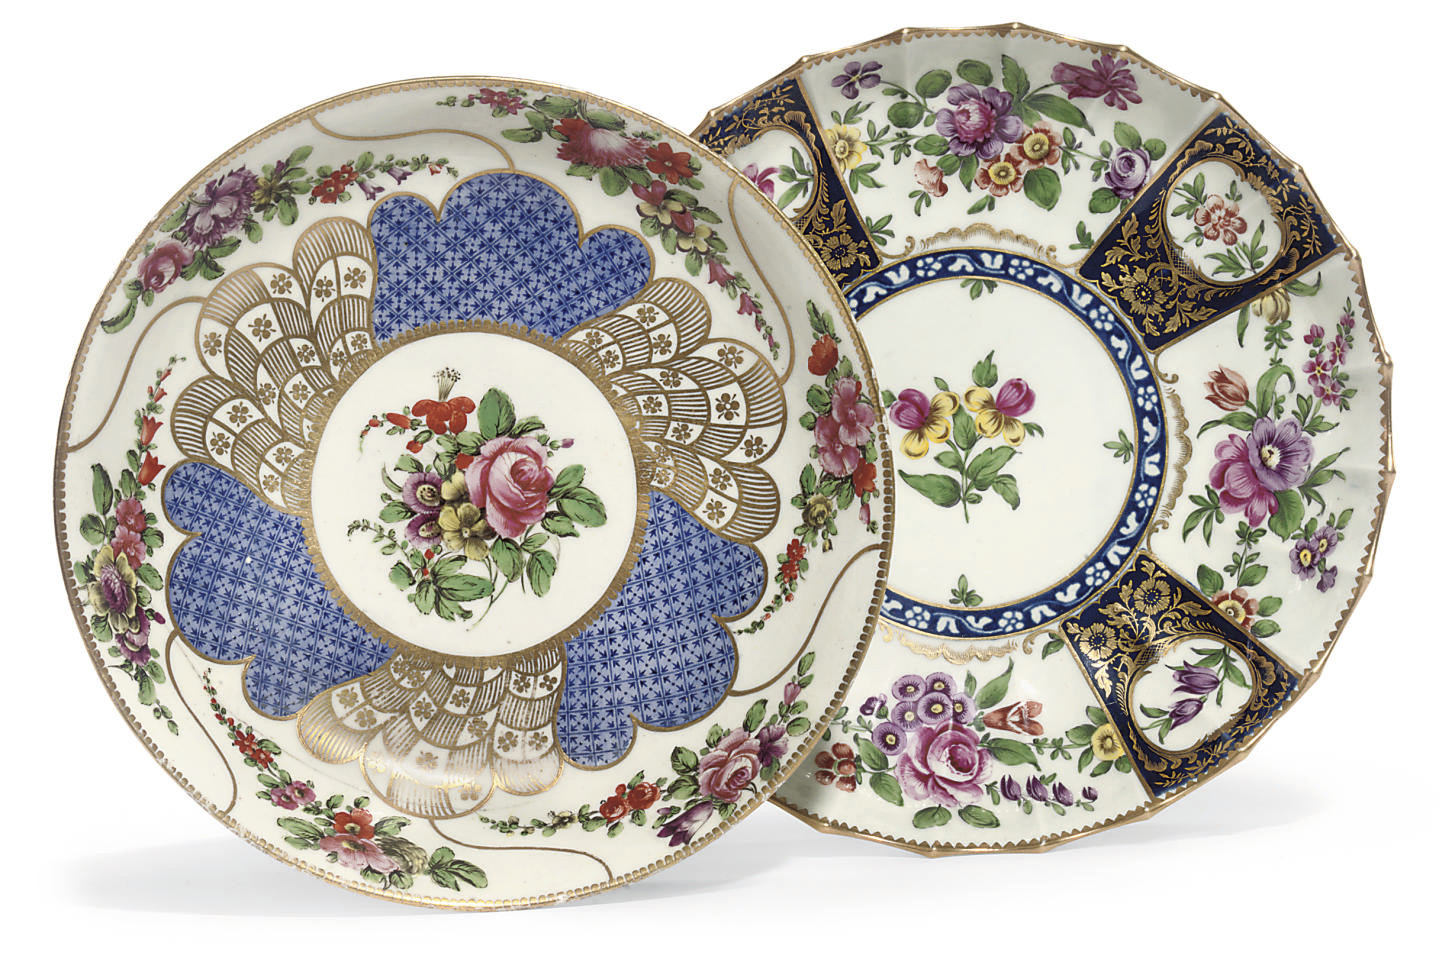 TWO WORCESTER SAUCER DISHES